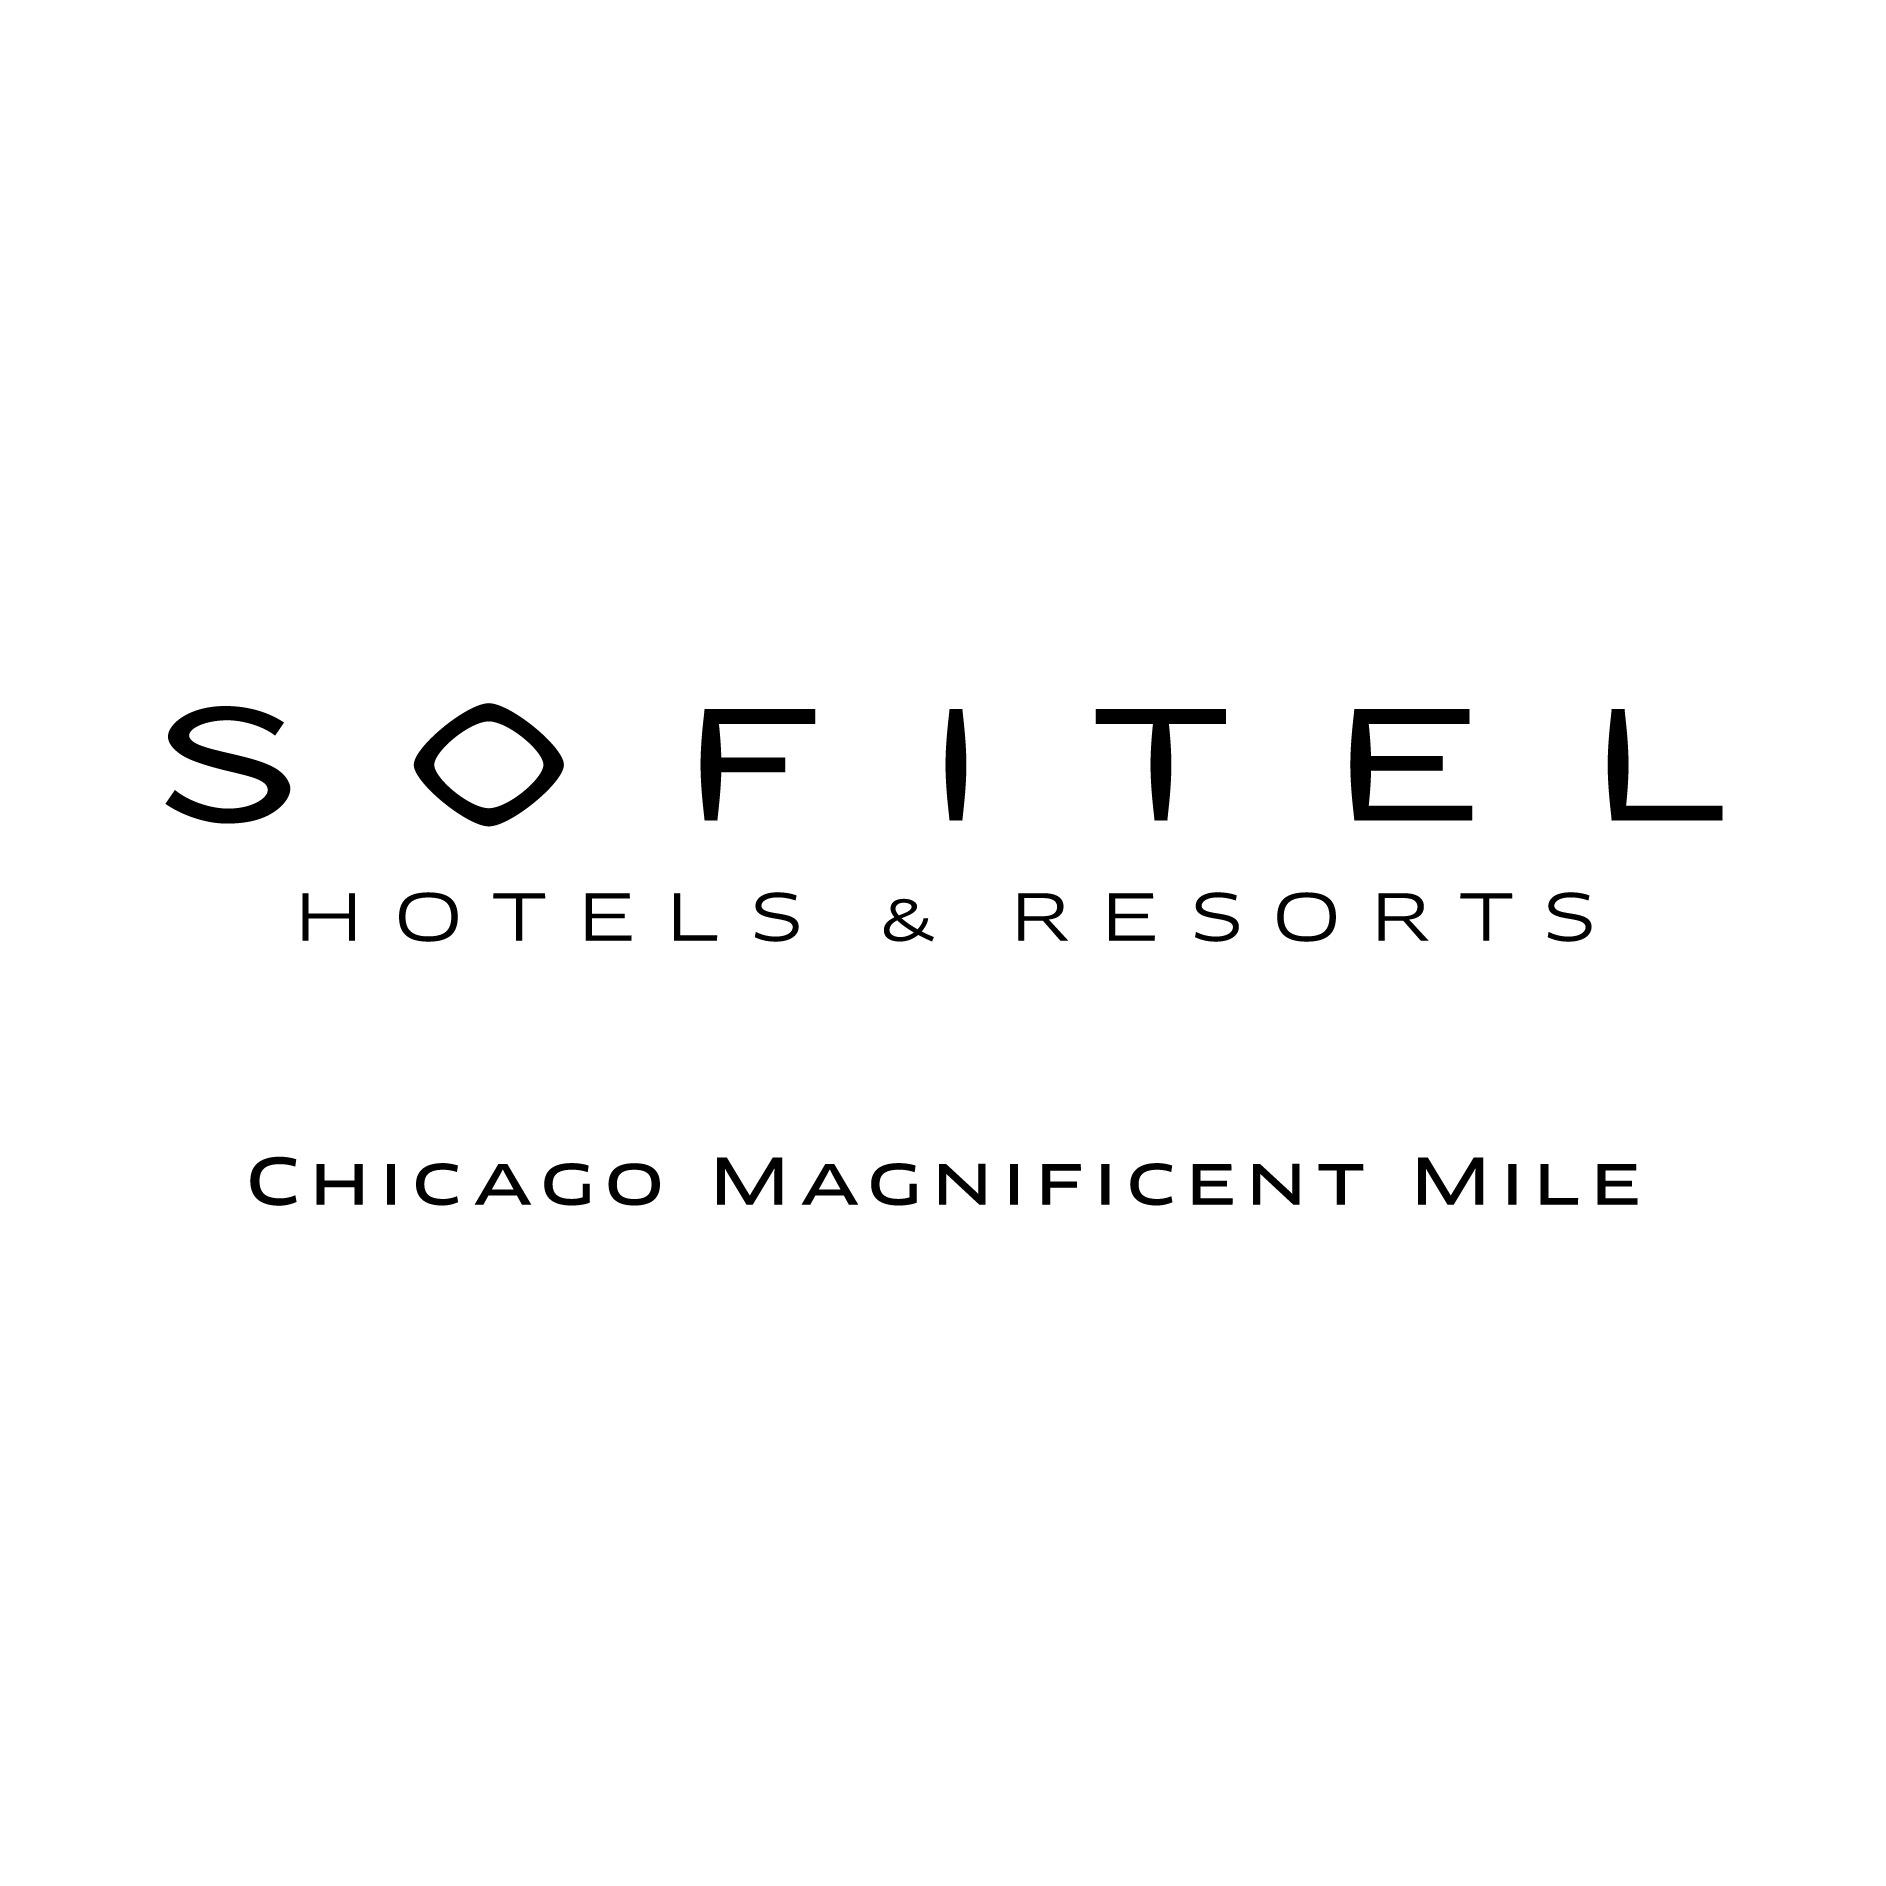 image of the Sofitel Chicago Magnificent Mile